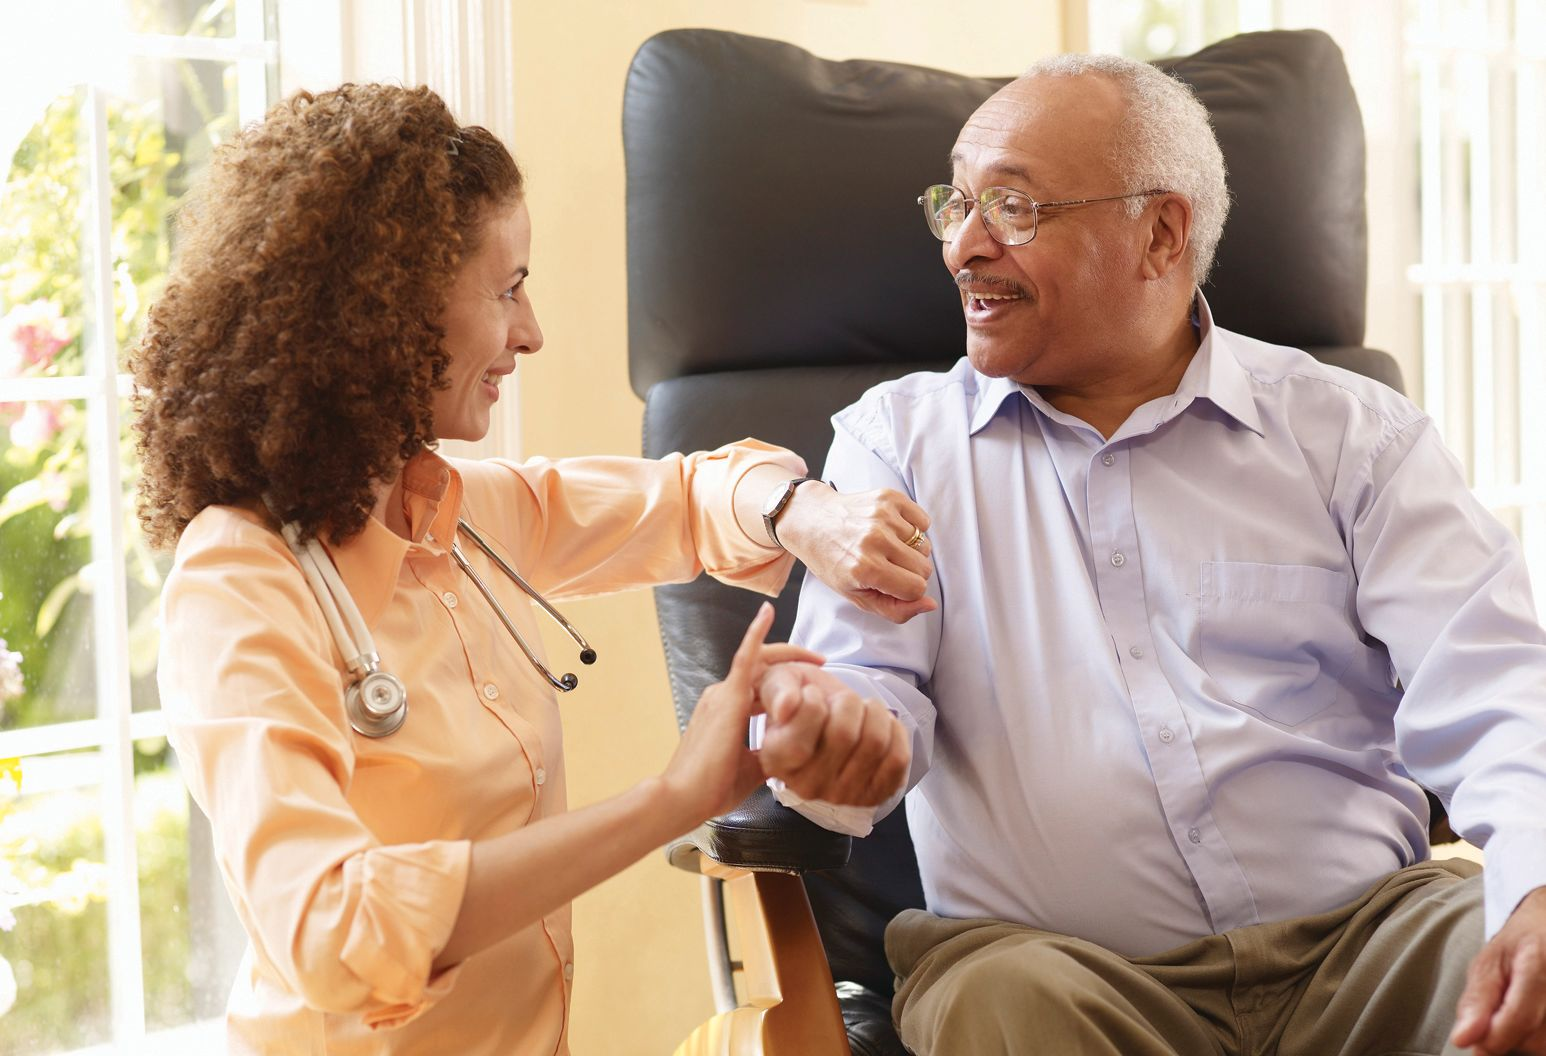 female physician smiling while checking pulse of elderly man sitting in chair